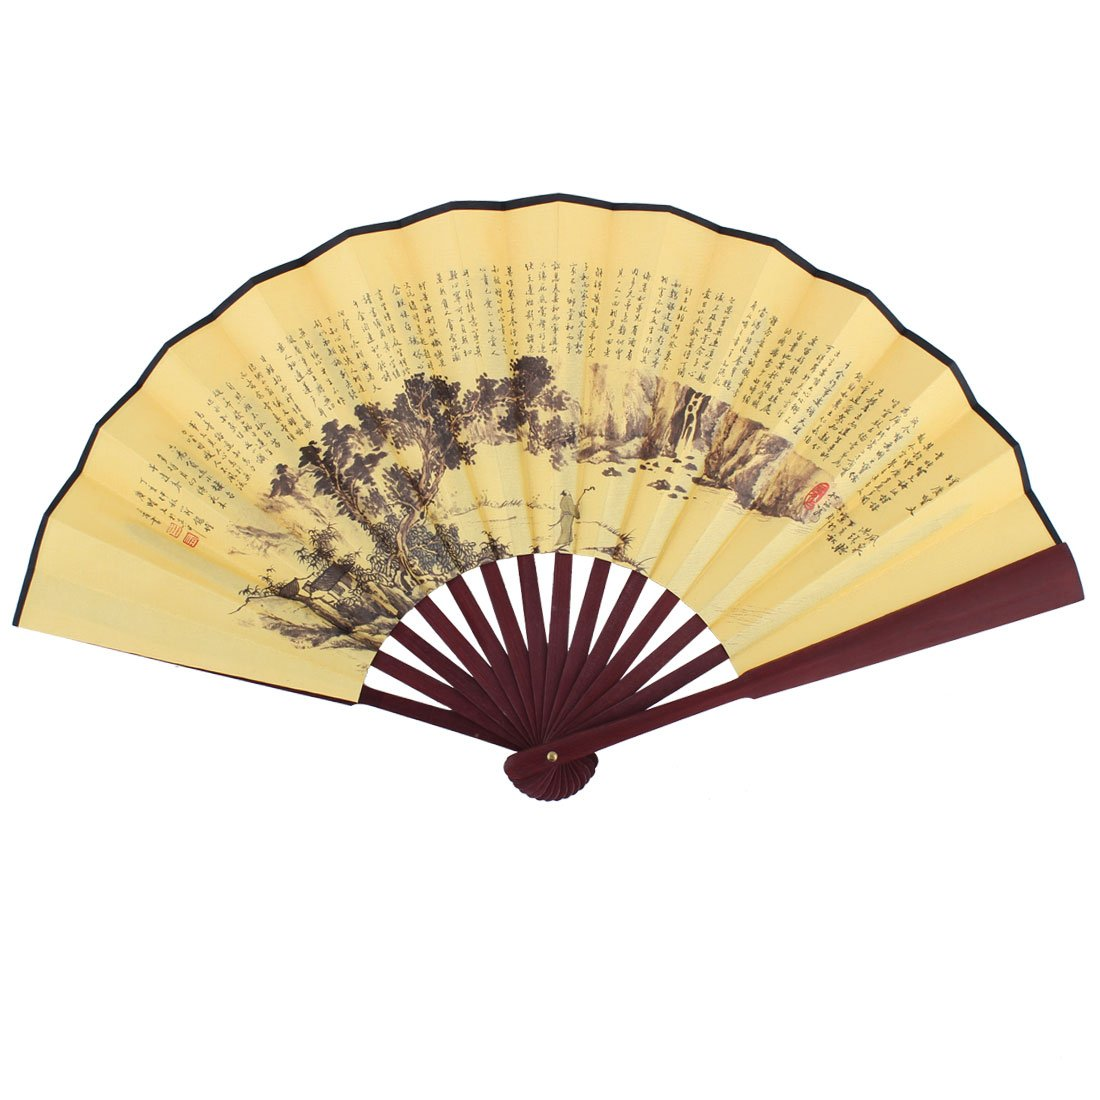 uxcell Bamboo Ribs Chinese Poems Landscape Pattern Man Summer Folding Cooling Hand Fan a16050600ux0301